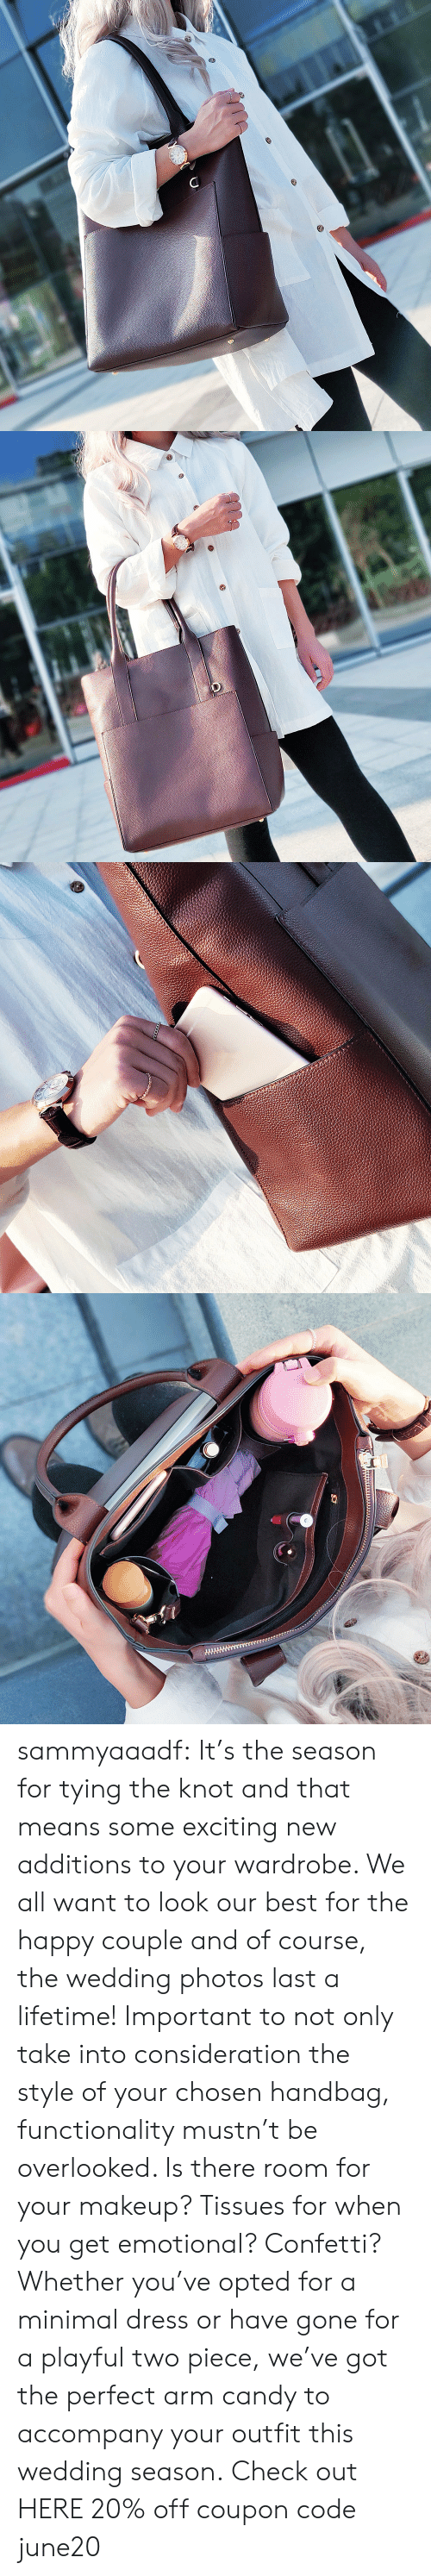 Candy, Makeup, and Tumblr: sammyaaadf: It's the season for tying the knot and that means some exciting new additions to your wardrobe. We all want to look our best for the happy couple and of course, the wedding photos last a lifetime! Important to not only take into consideration the style of your chosen handbag, functionality mustn't be overlooked. Is there room for your makeup? Tissues for when you get emotional? Confetti? Whether you've opted for a minimal dress or have gone for a playful two piece, we've got the perfect arm candy to accompany your outfit this wedding season. Check out HERE 20% off coupon code:june20